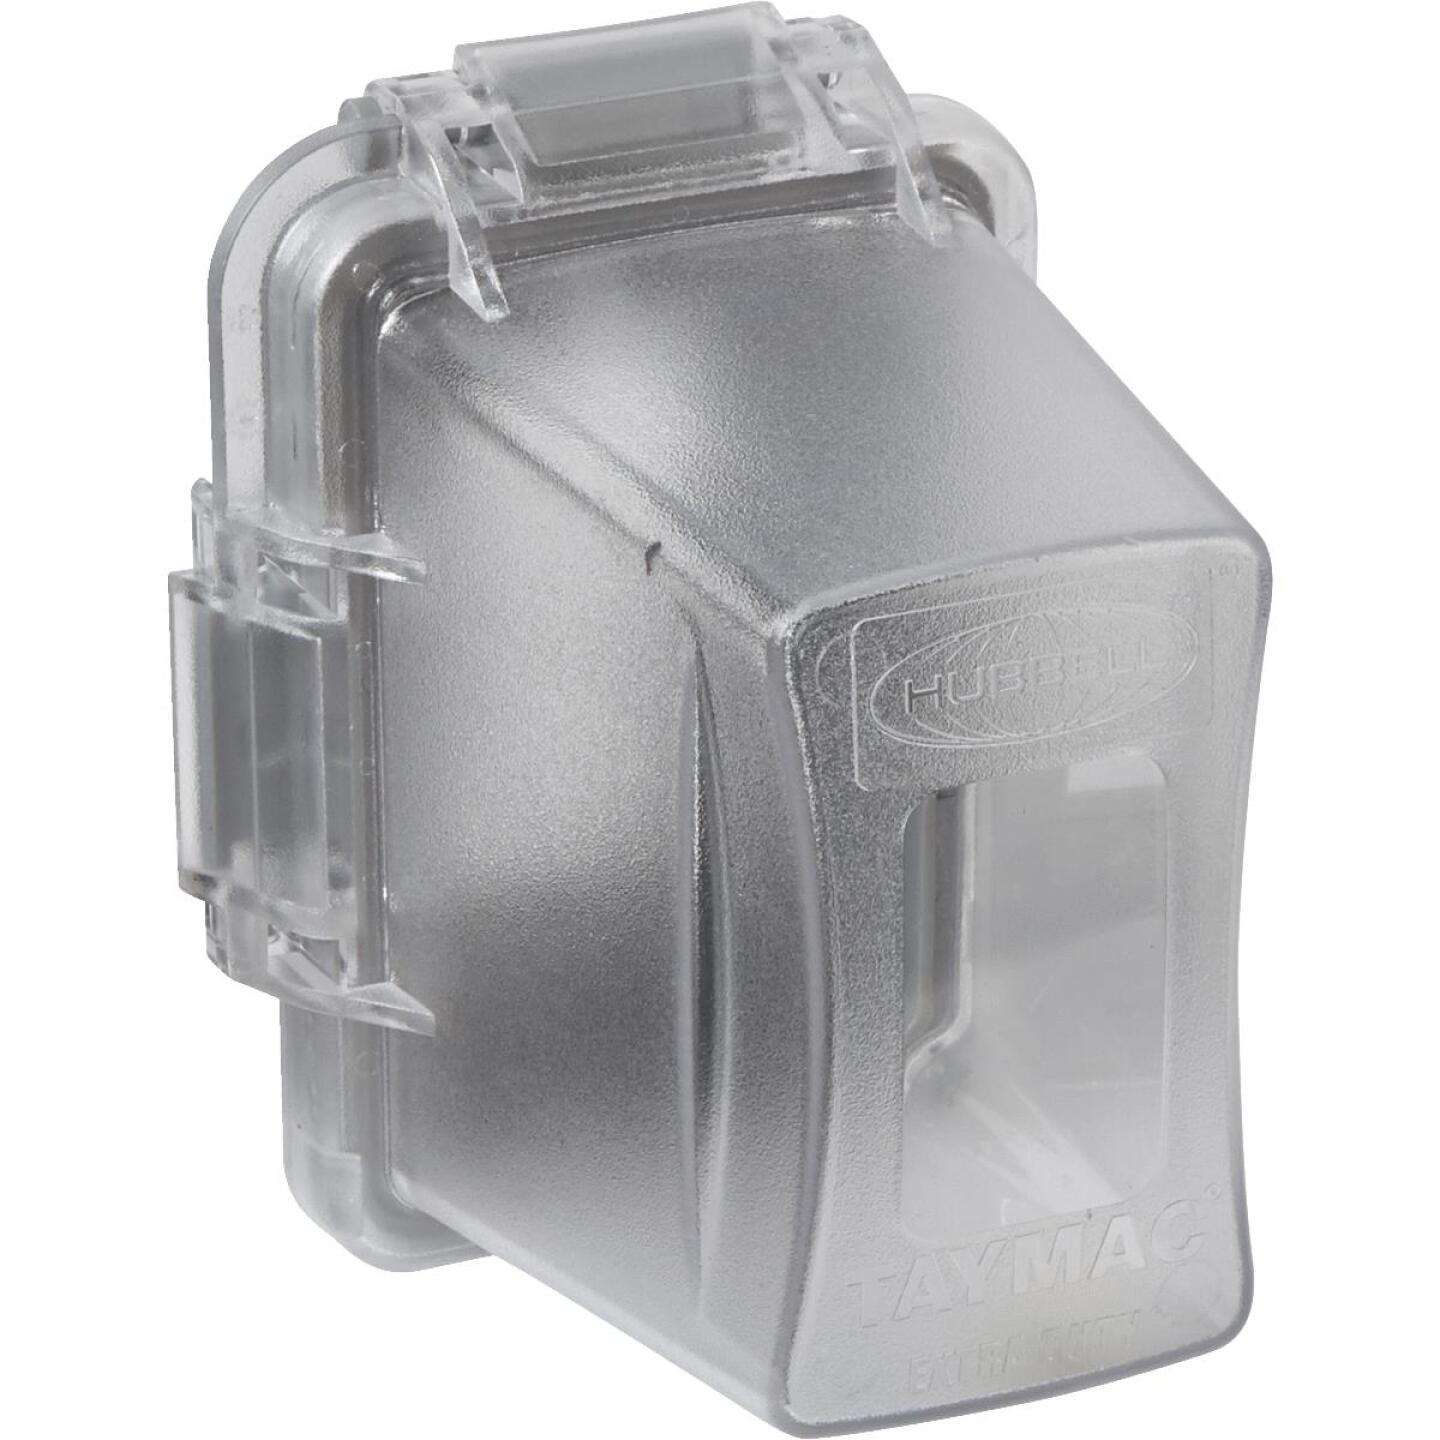 TayMac Extra Duty Single Gang Vertical/Horizontal Mount Polycarbonate Clear Deep In-Use Outdoor Outlet Cover Image 1